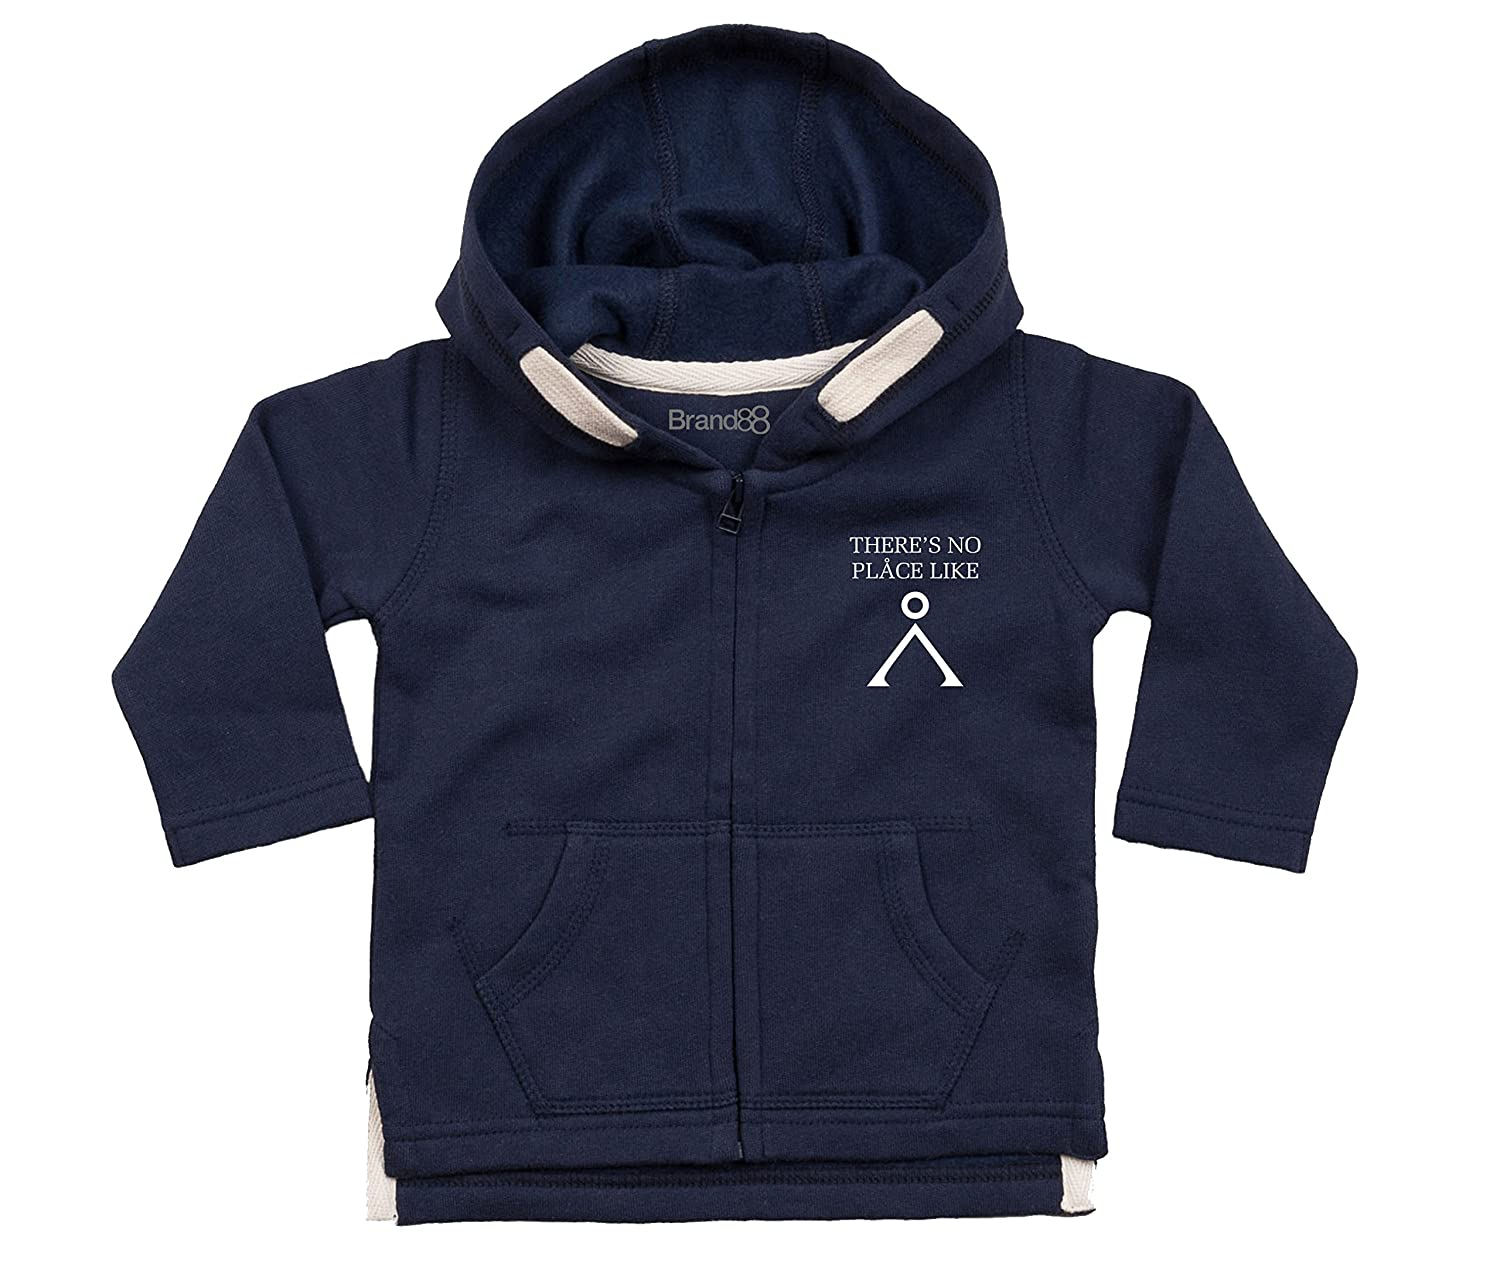 Brand88 Theres No Place Like Baby Hoodie